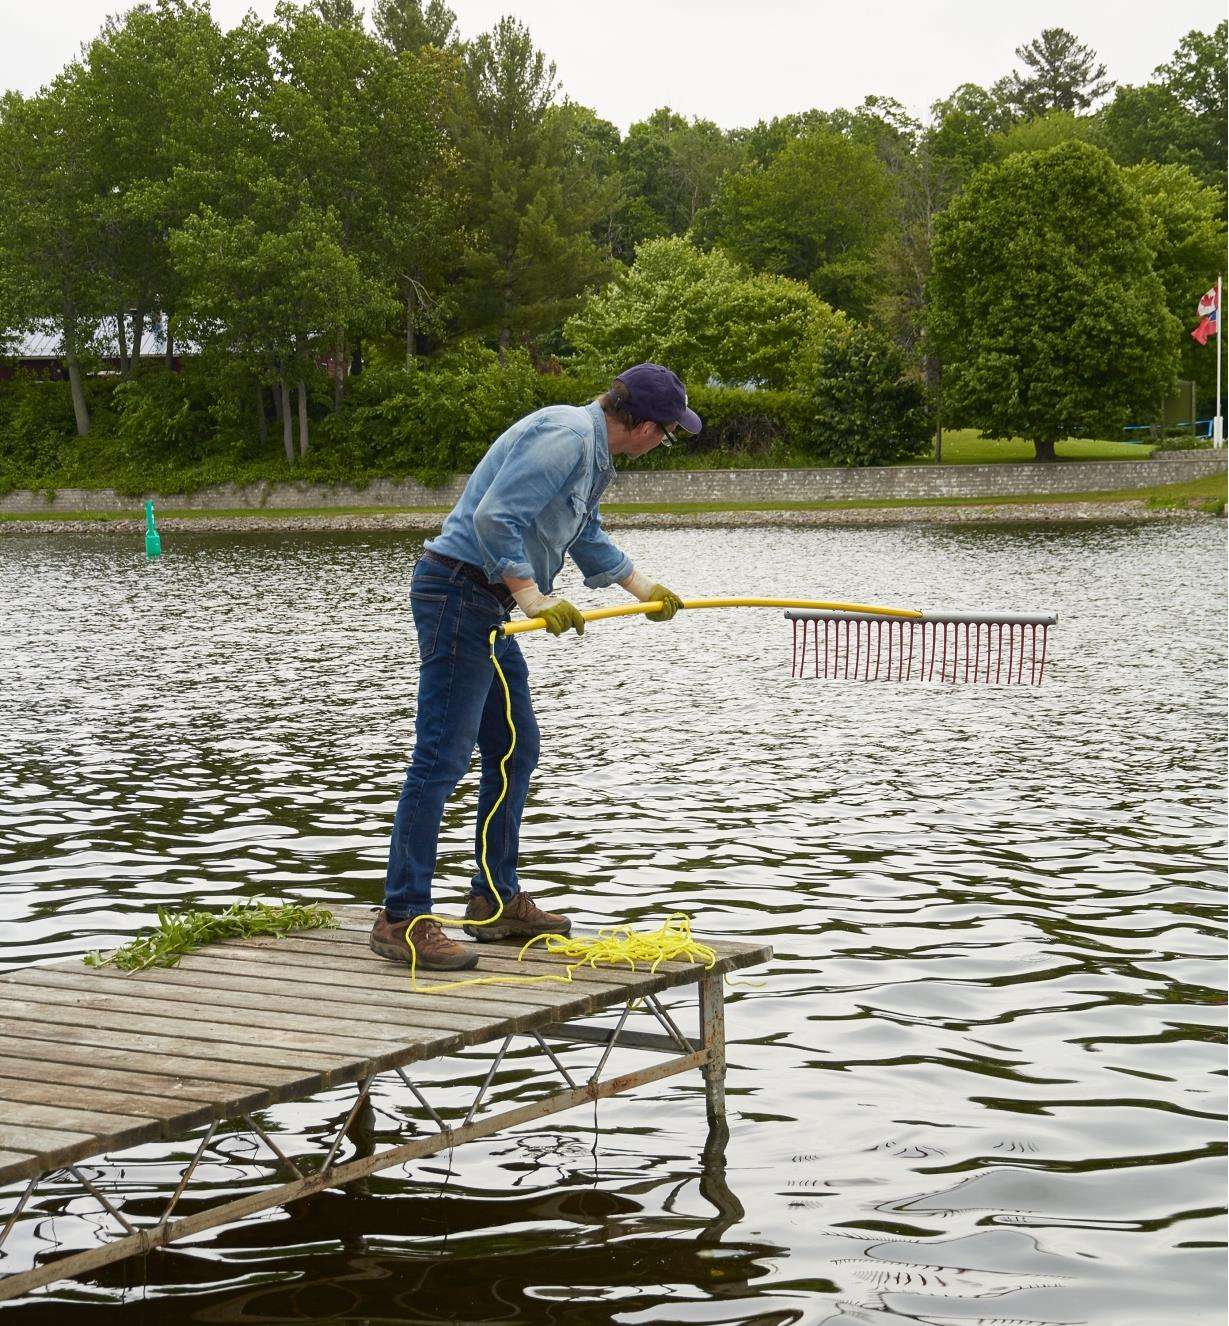 A man standing at the end of a dock rakes weeds from a pond